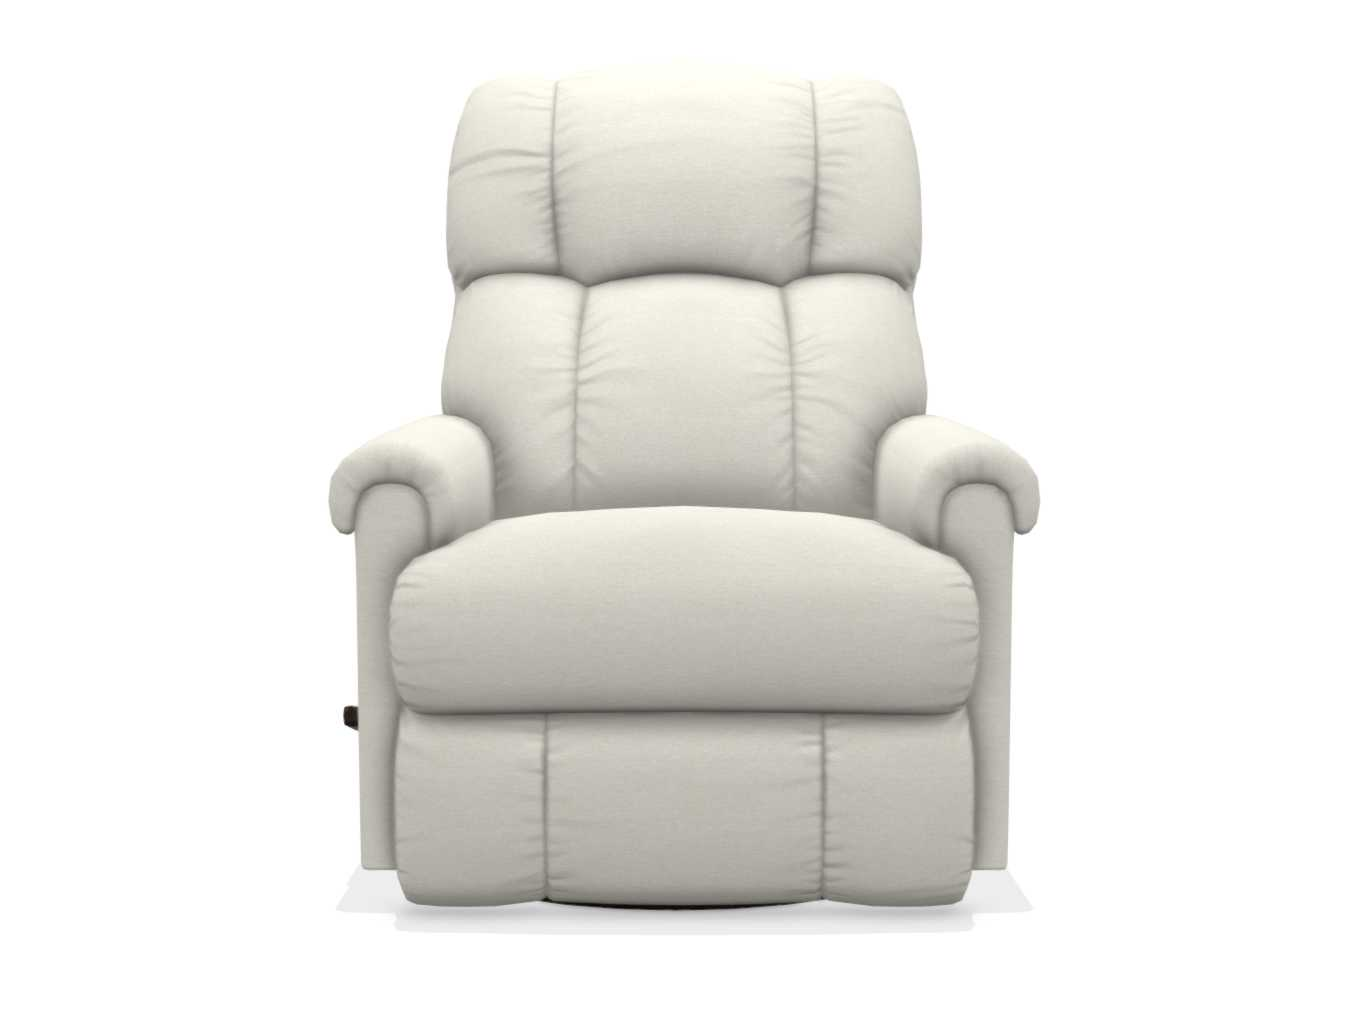 La-Z-Boy Pinnacle Gliding Recliner review